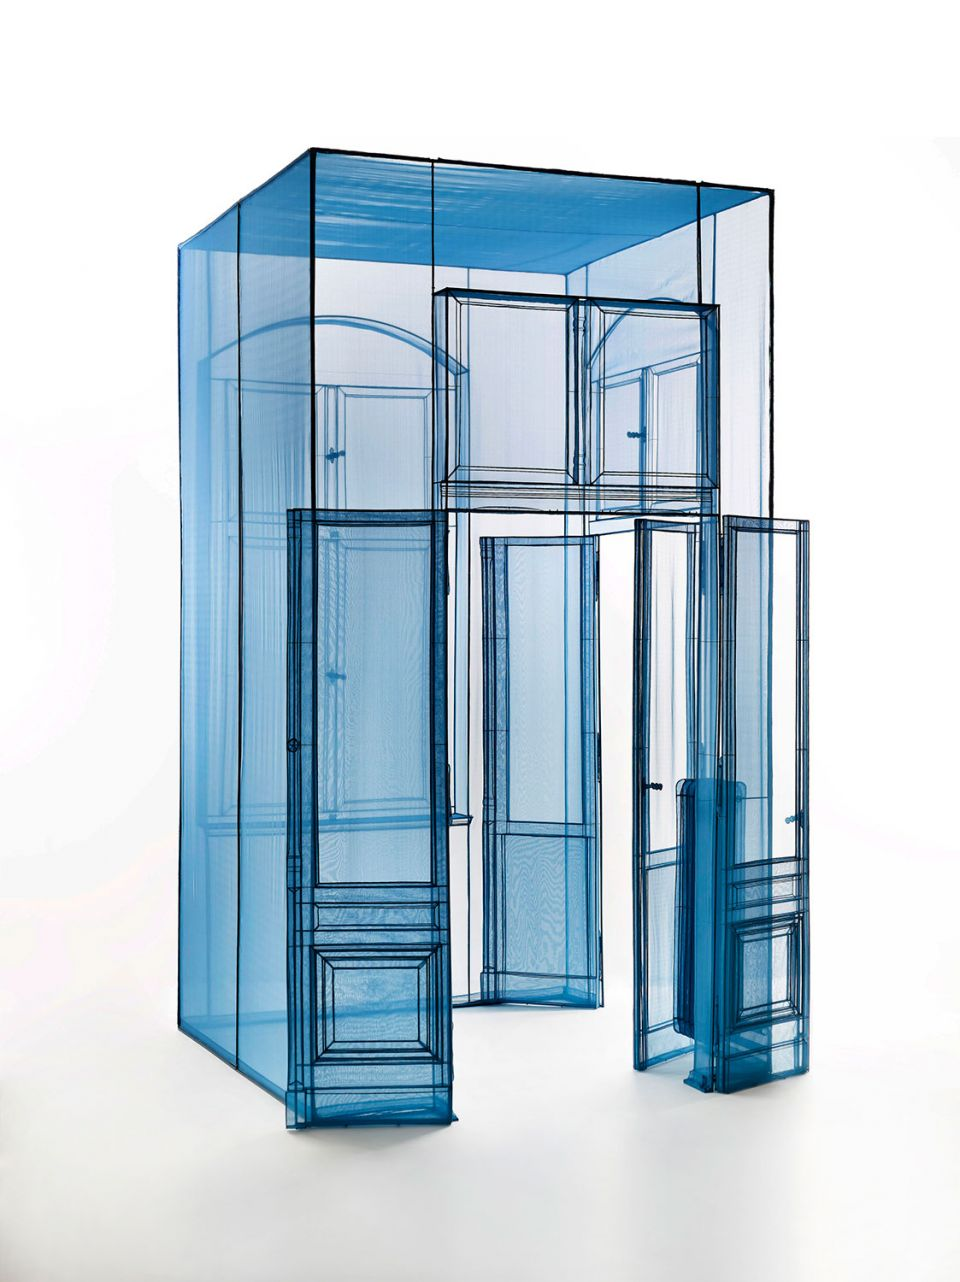 Do Ho Suh, Hub, Wielandstr. 18, 12159 Berlin, 2015, polyester fabric, stainless steel